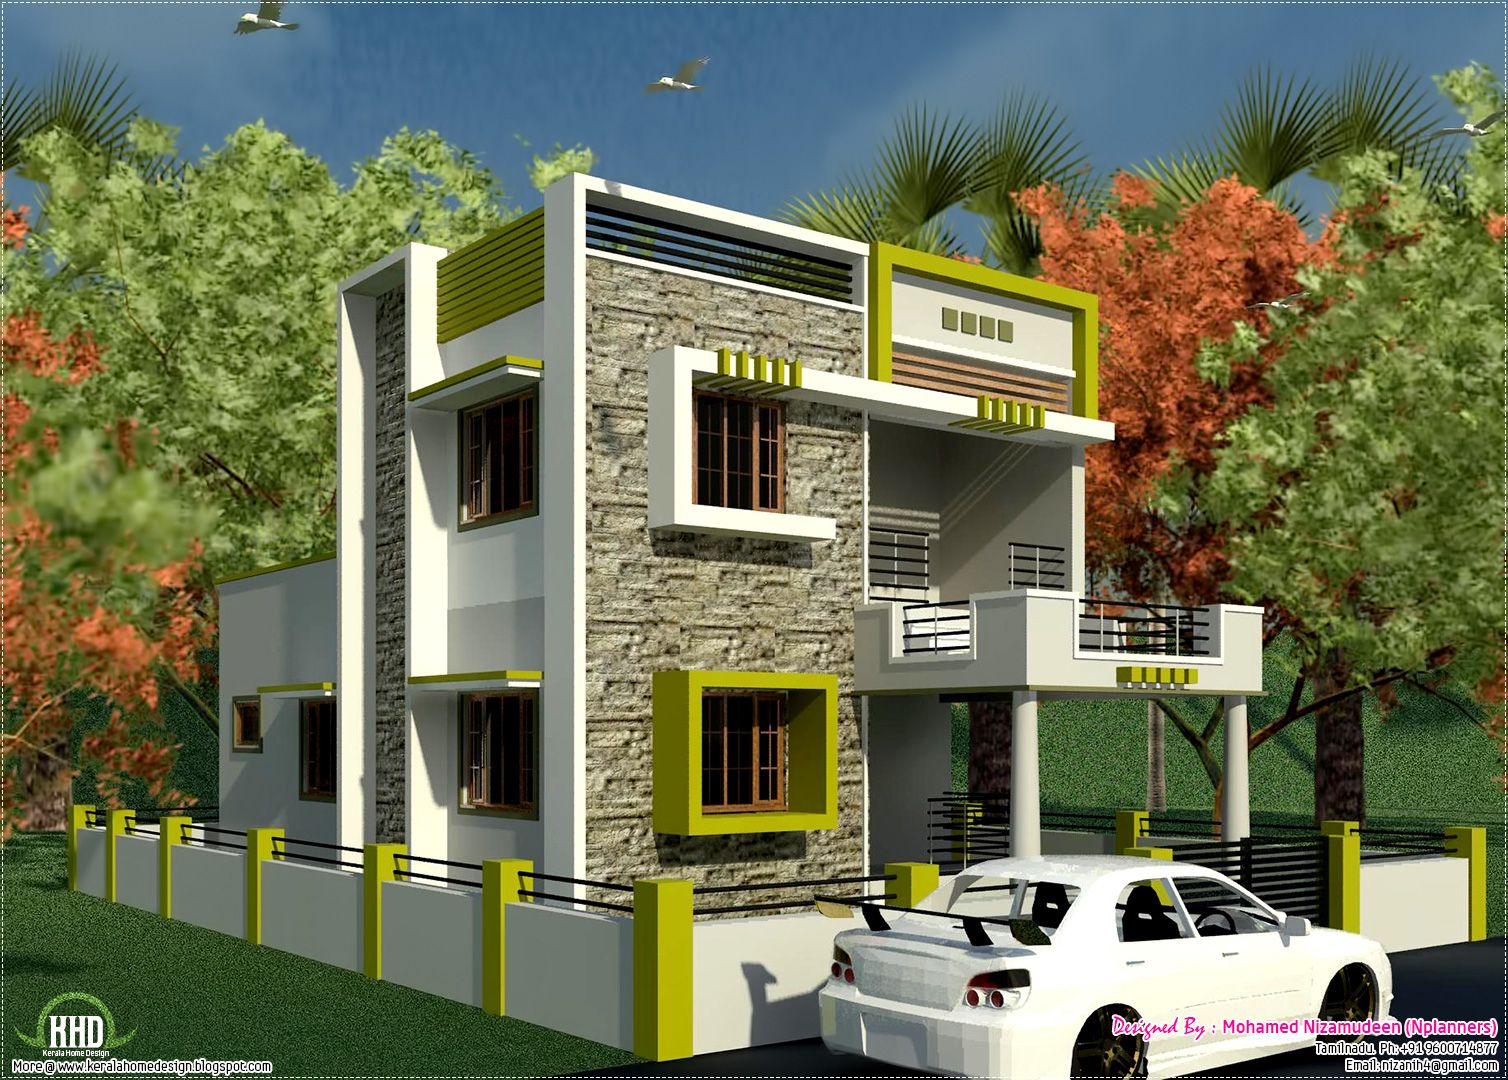 Small House With Car Park Design Tobfav Com Ideas For The House Pinterest Smallest House